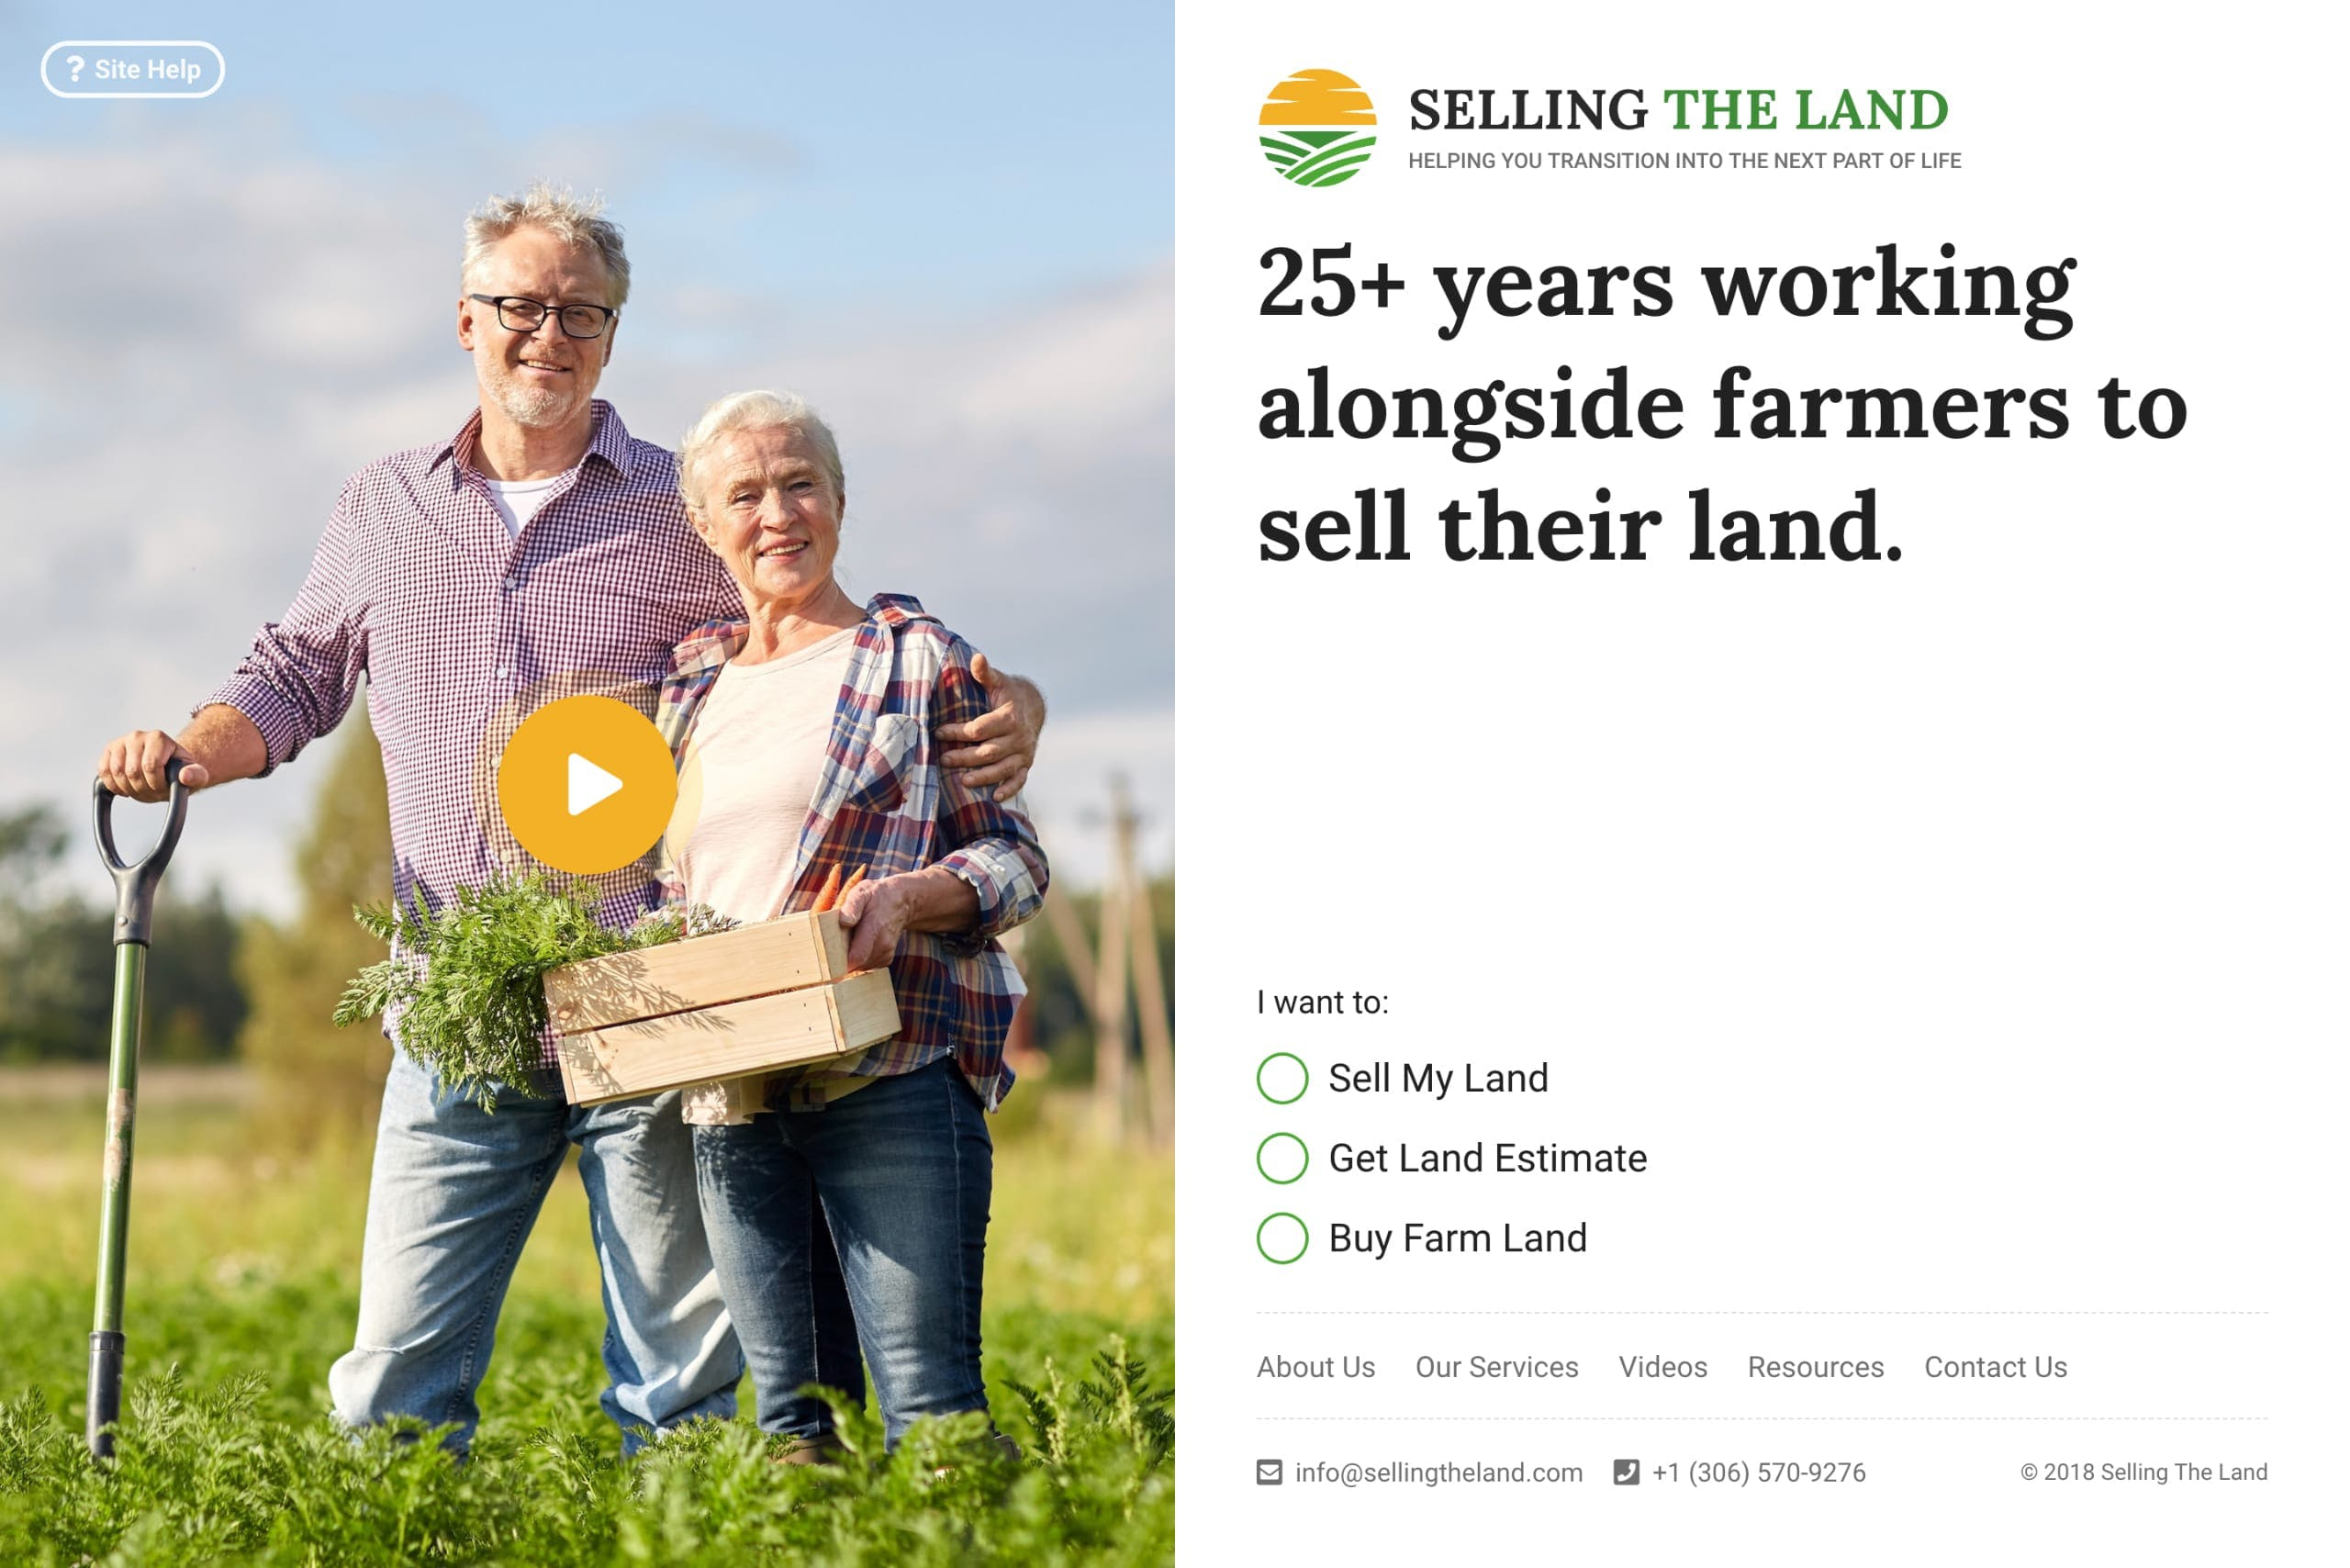 Selling the Land